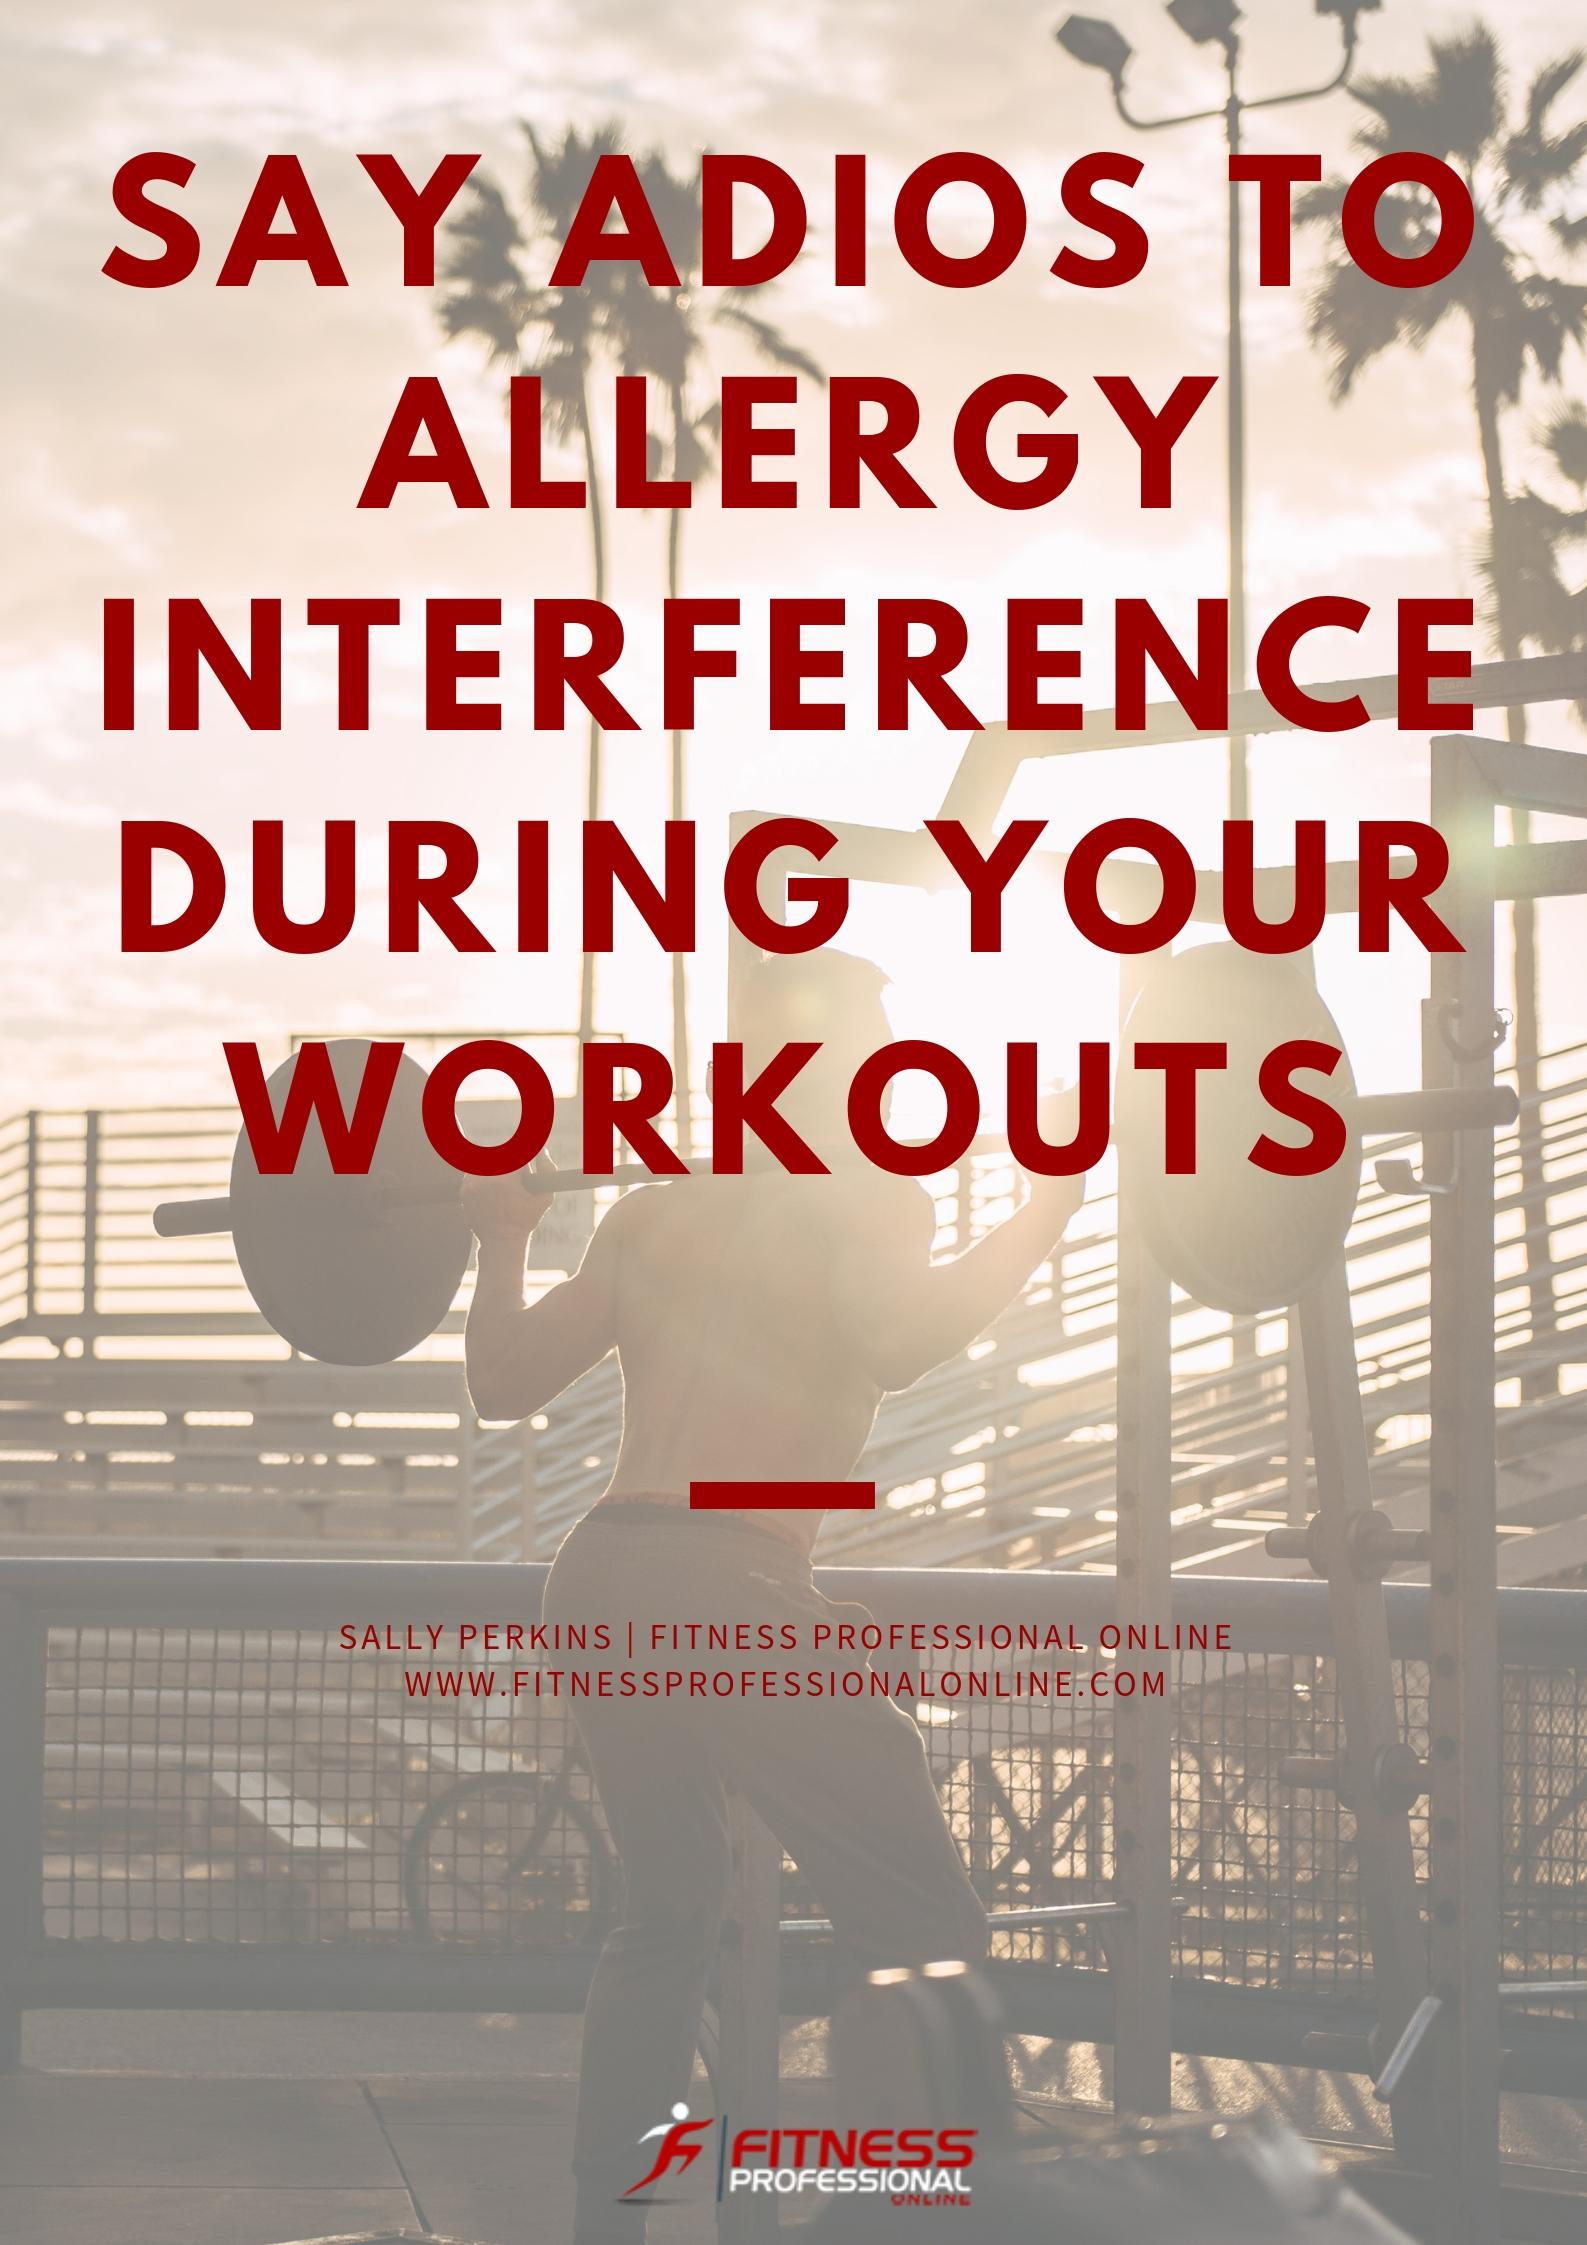 While it's not usually advisable to work out while you're sick, if you're dealing with allergies, indoor or out, there's no reason to let them stop you from killing your session.